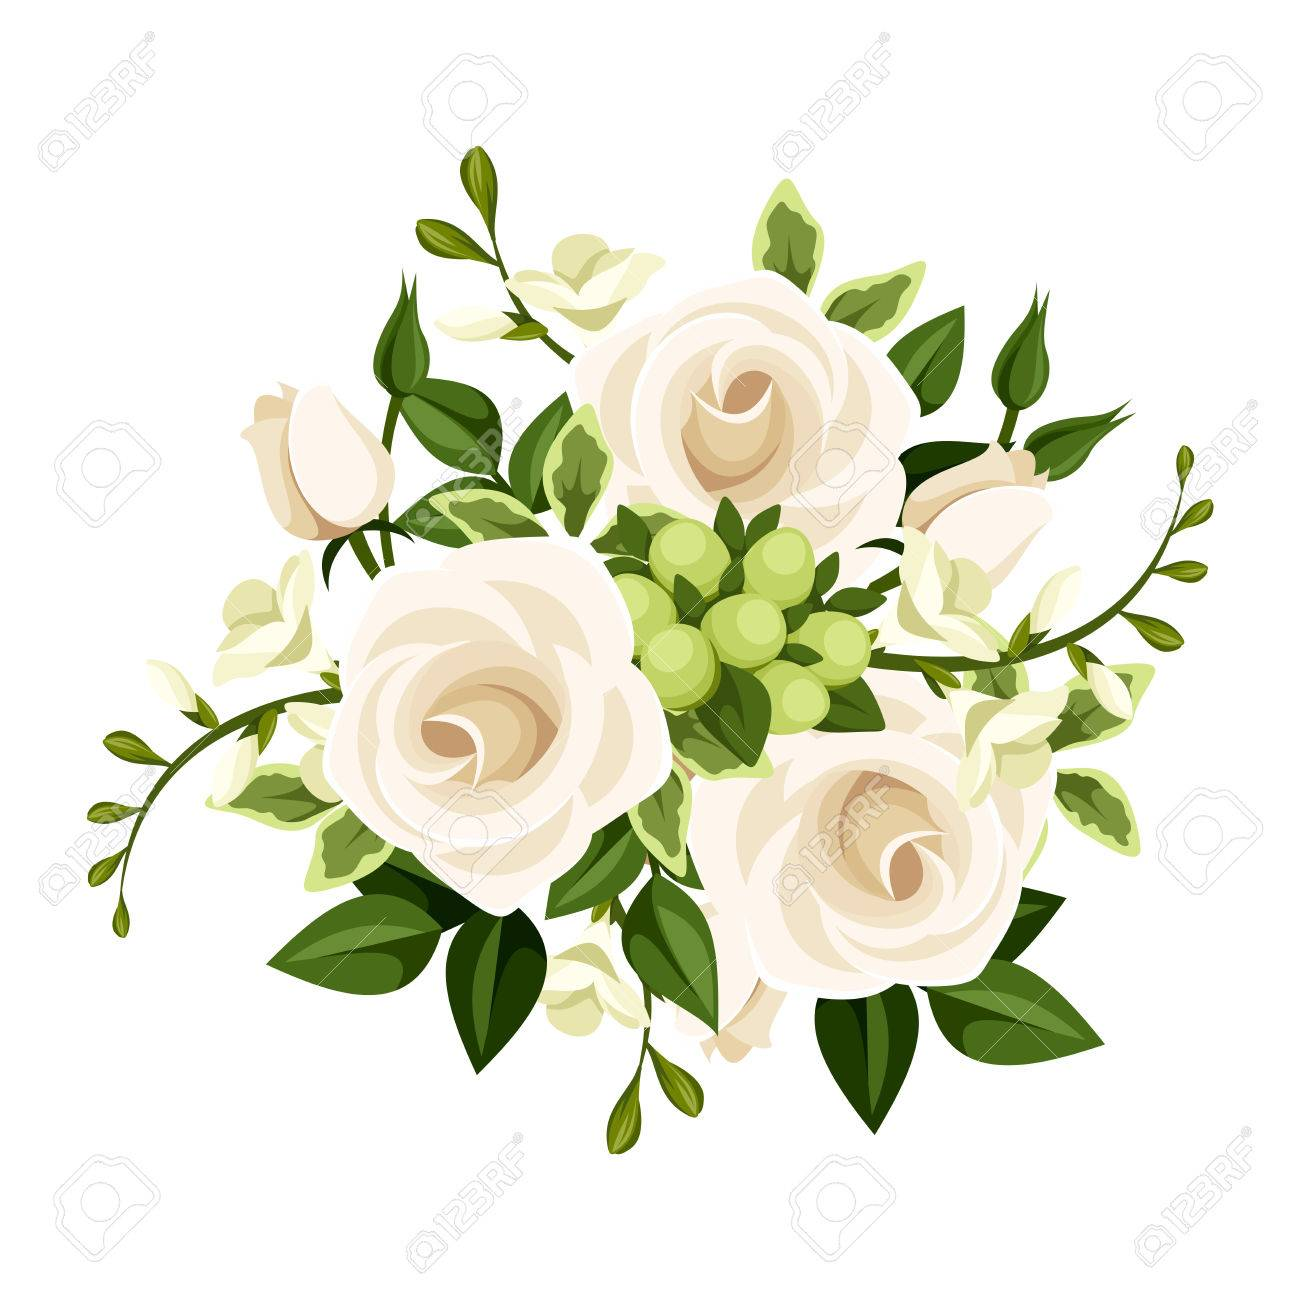 Bouquet of white roses and freesia flowers illustration royalty free bouquet of white roses and freesia flowers illustration stock vector 30529479 izmirmasajfo